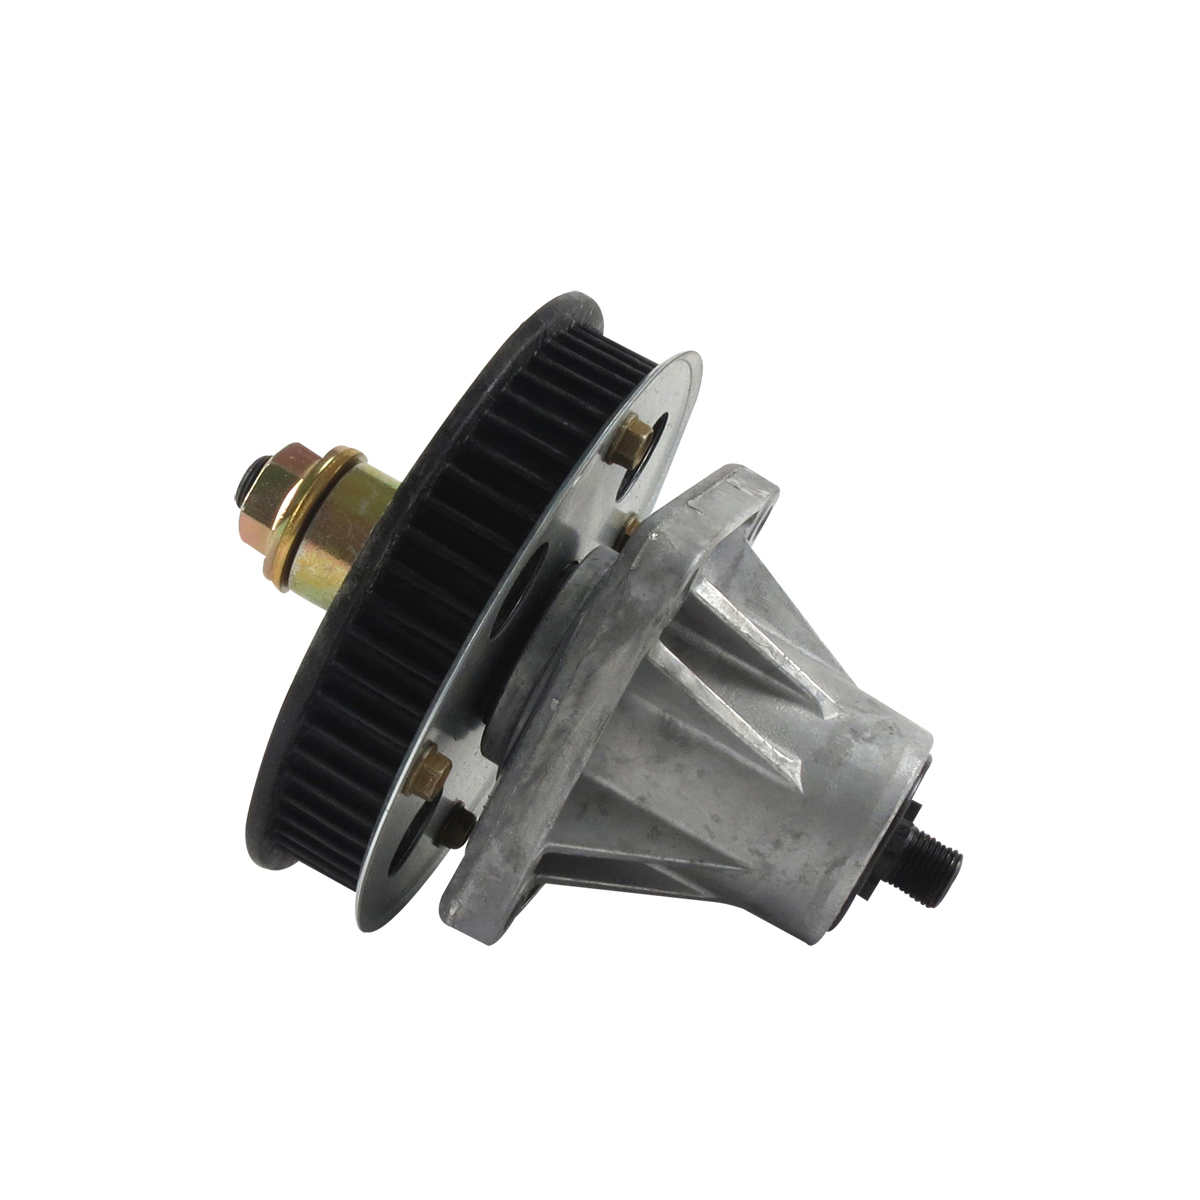 Cub Cadet Blade Spindle Assembly 918